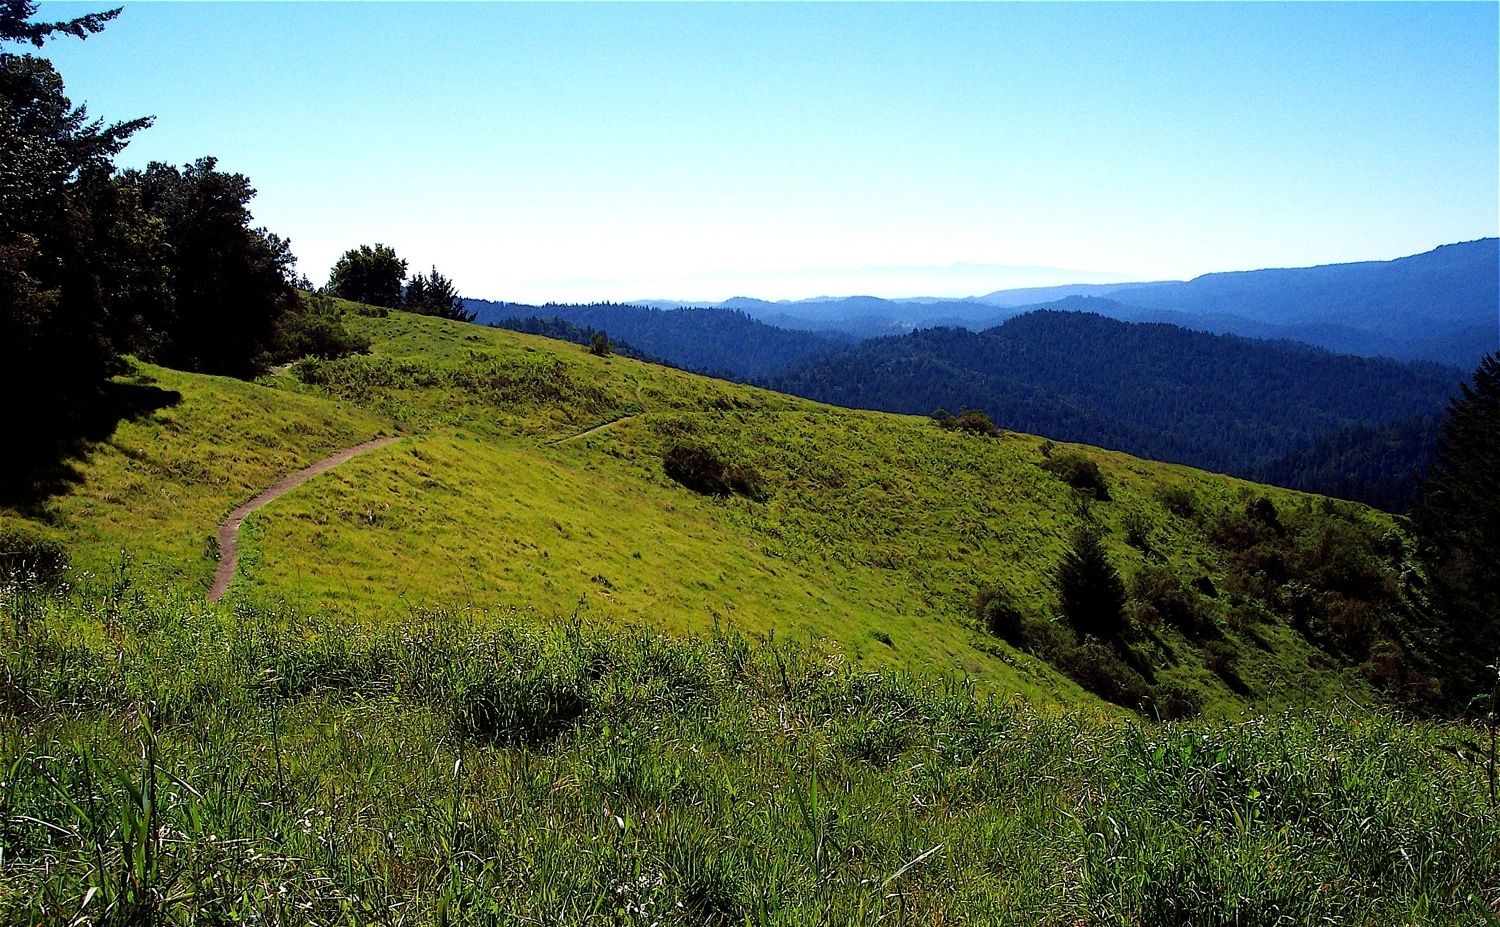 View of San Lorenzo Valley from Sempervirens Point